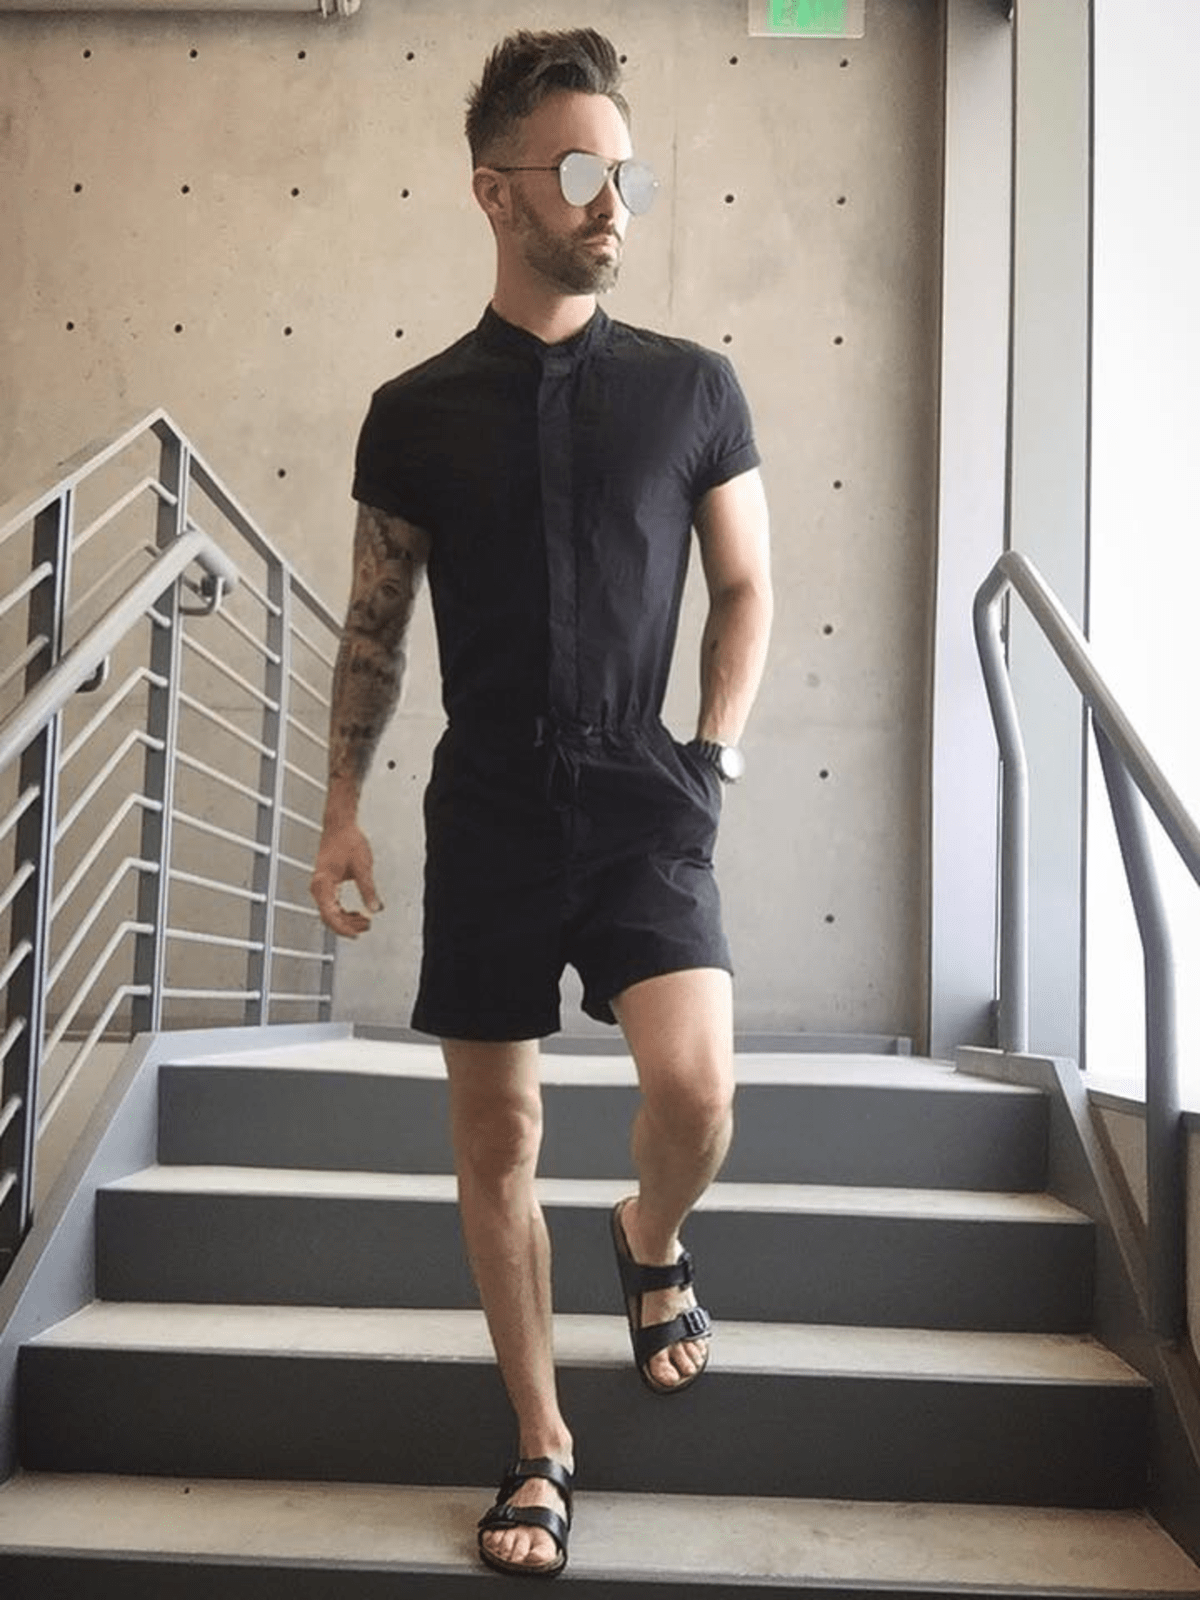 Brad Pritchett, Stylemakers